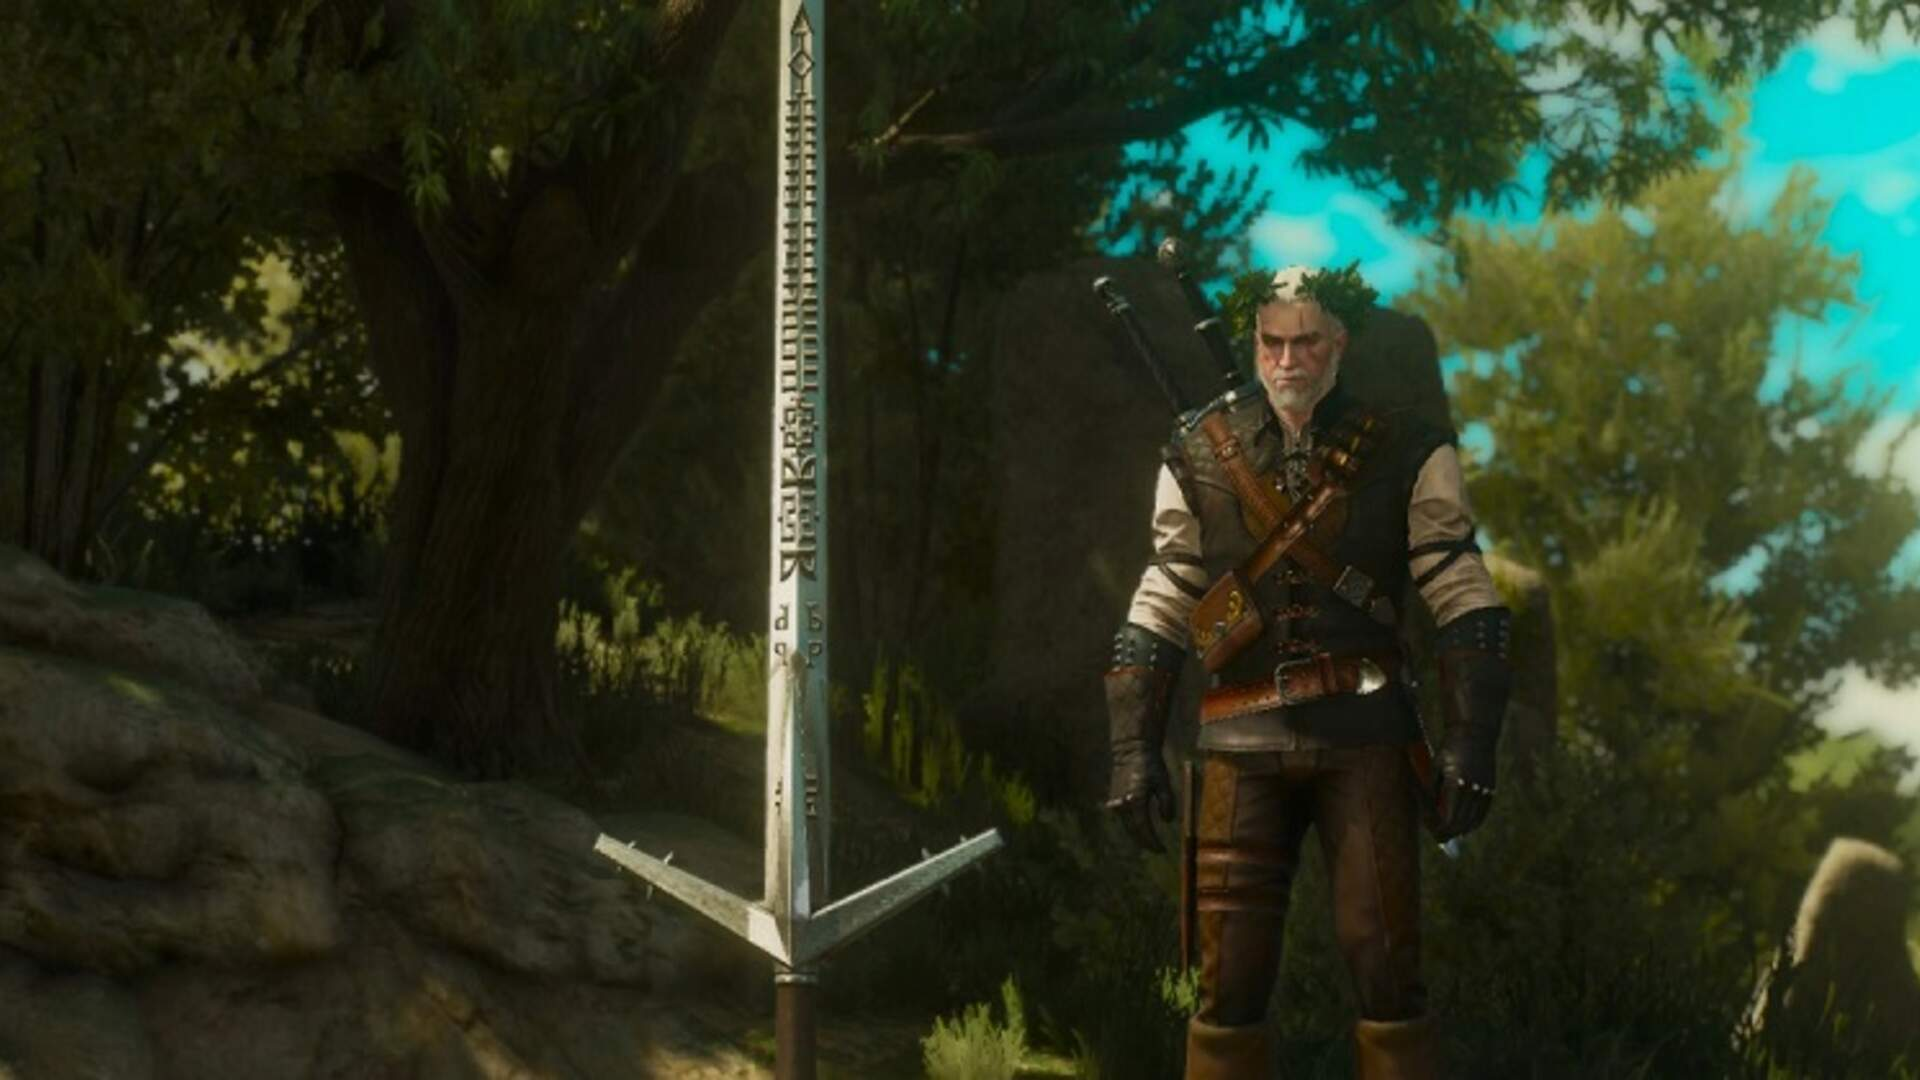 The Witcher 3 Best Weapon - How to Get the Aerondight Sword